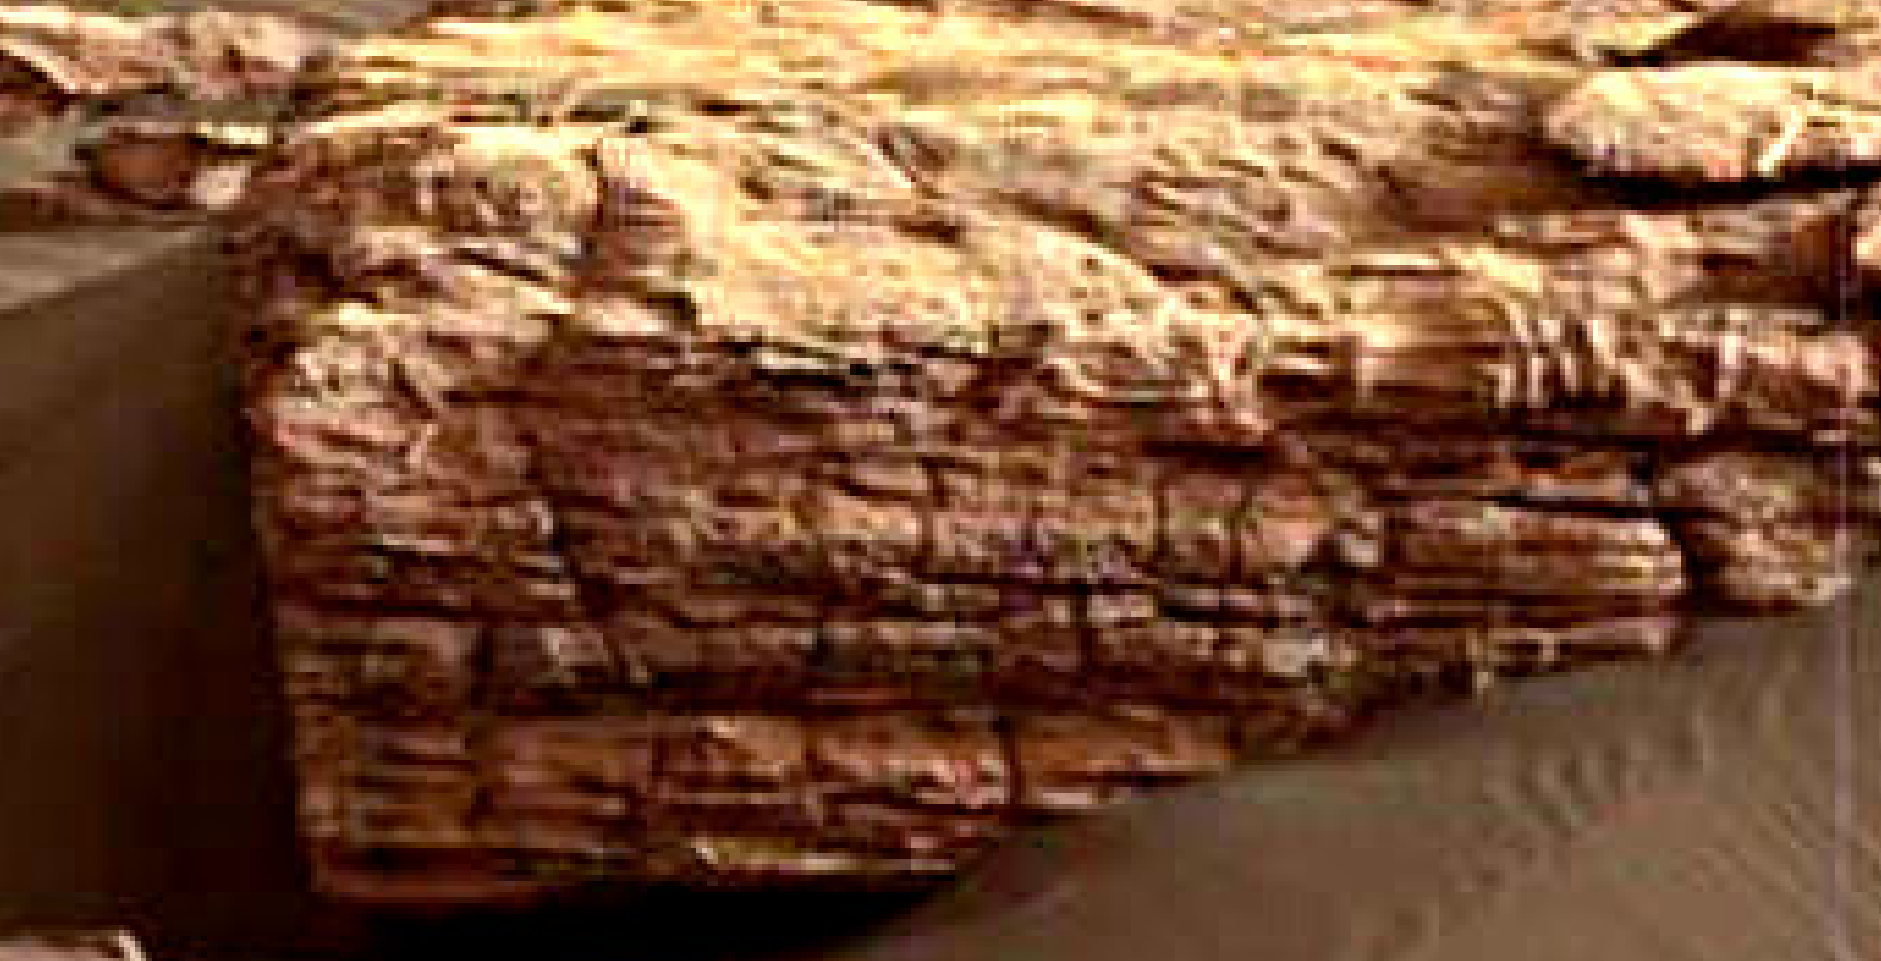 mars-sol-1512-anomaly-artifacts-7-was-life-on-mars